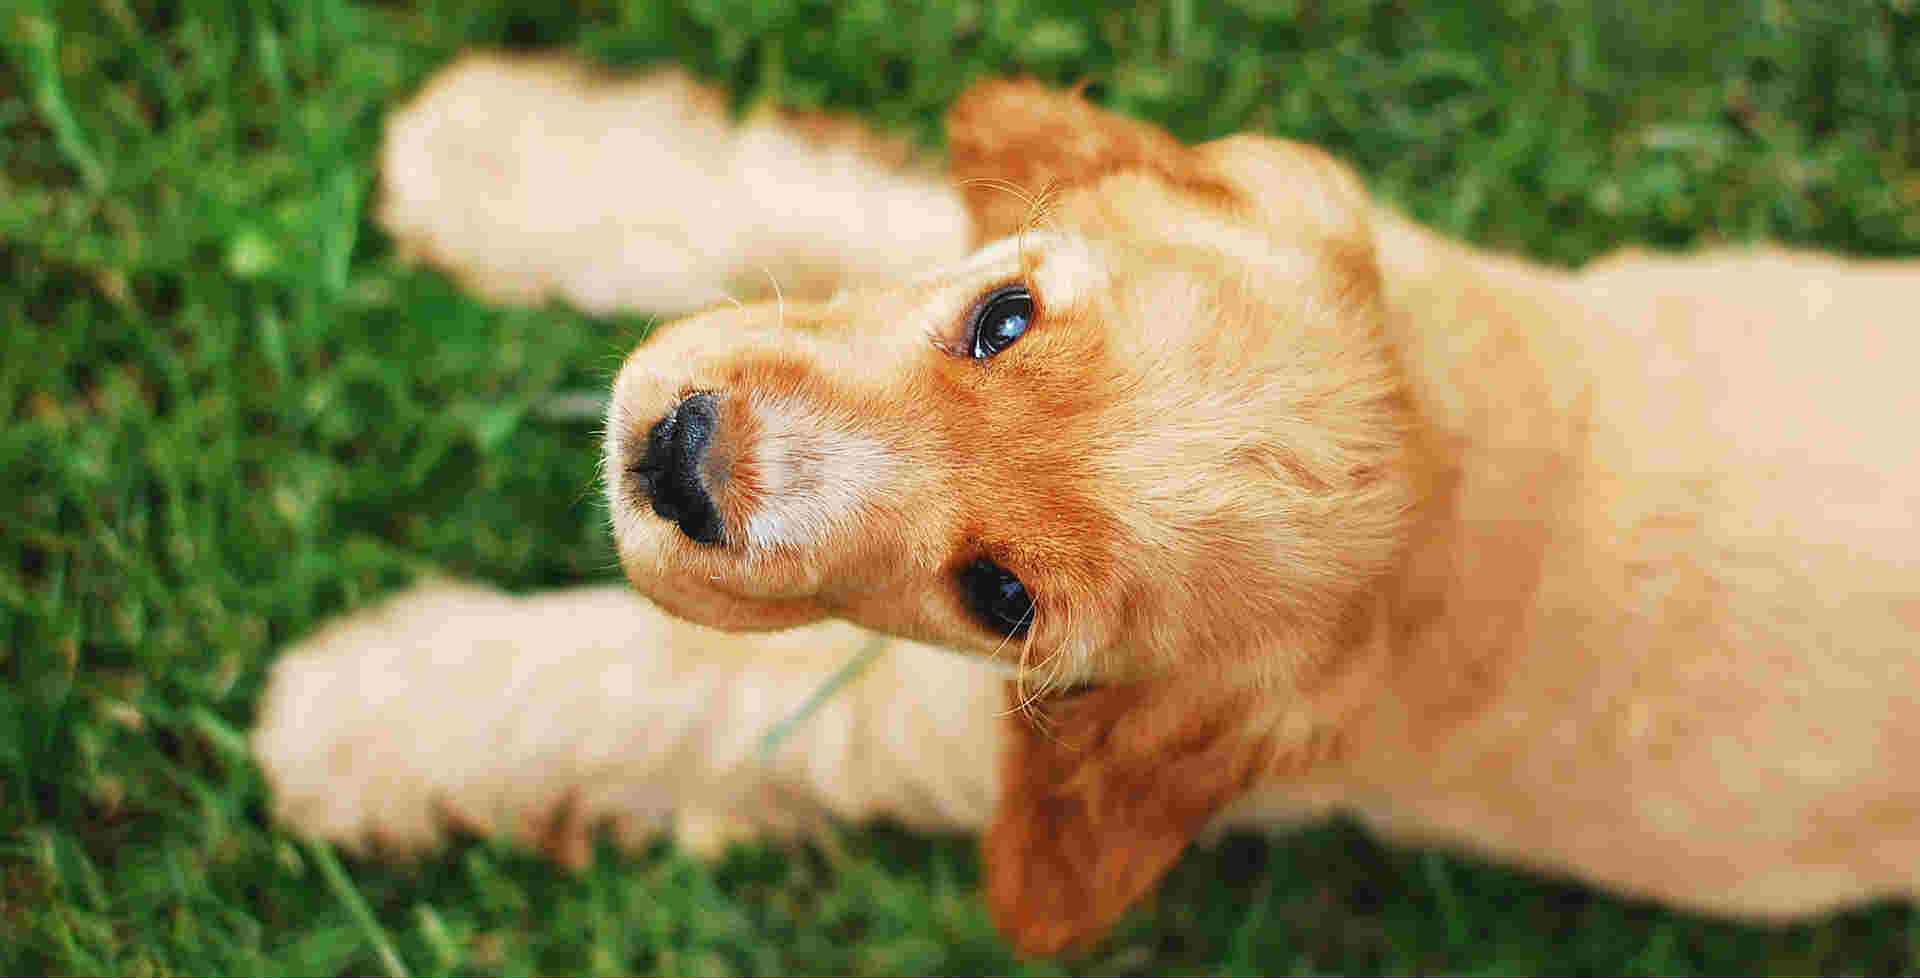 What can you give a dog who is allergic to grass?